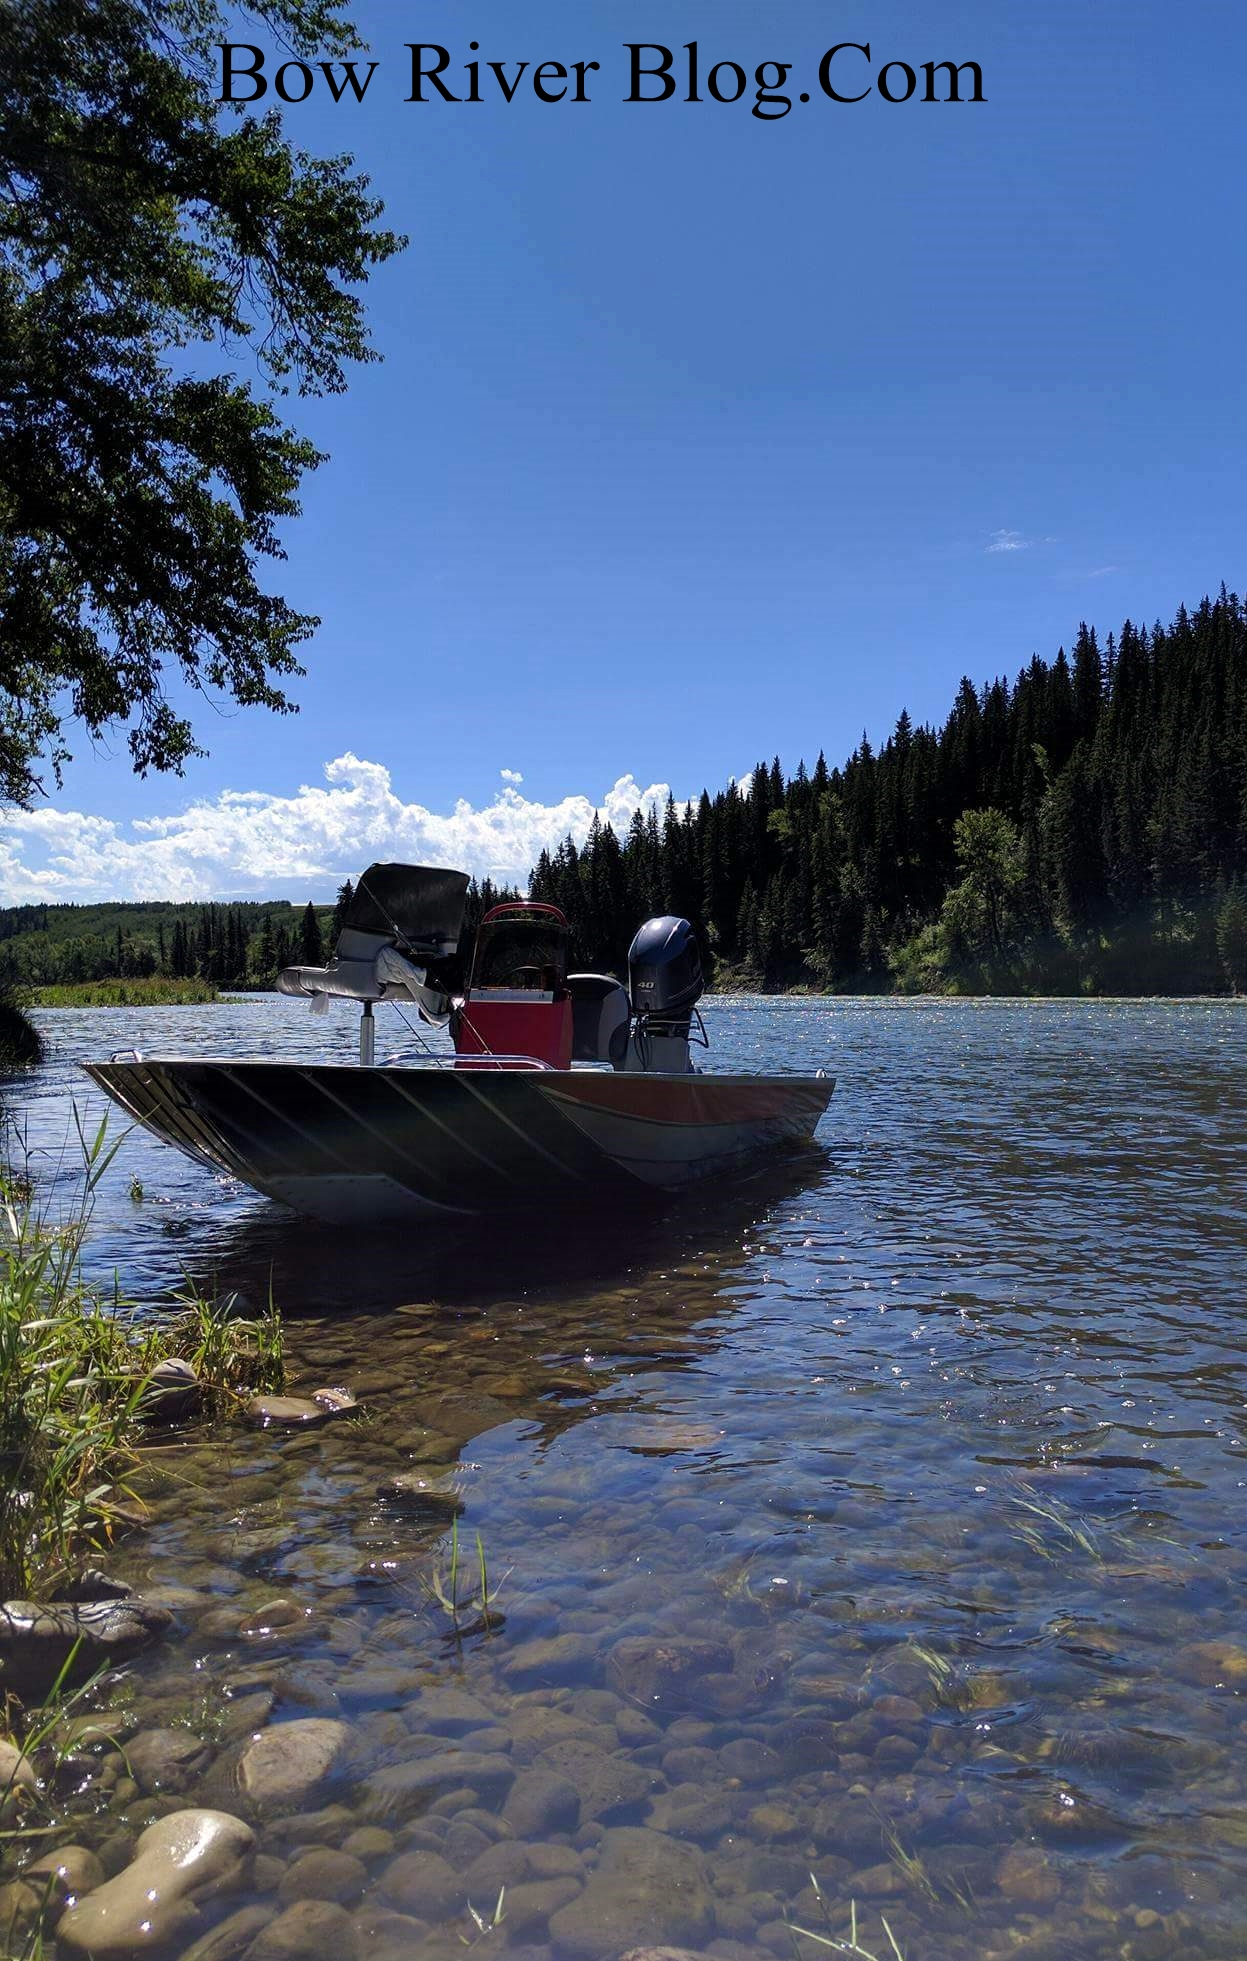 Guided bow river jet boat trips bow river blog for Fishing boat trips